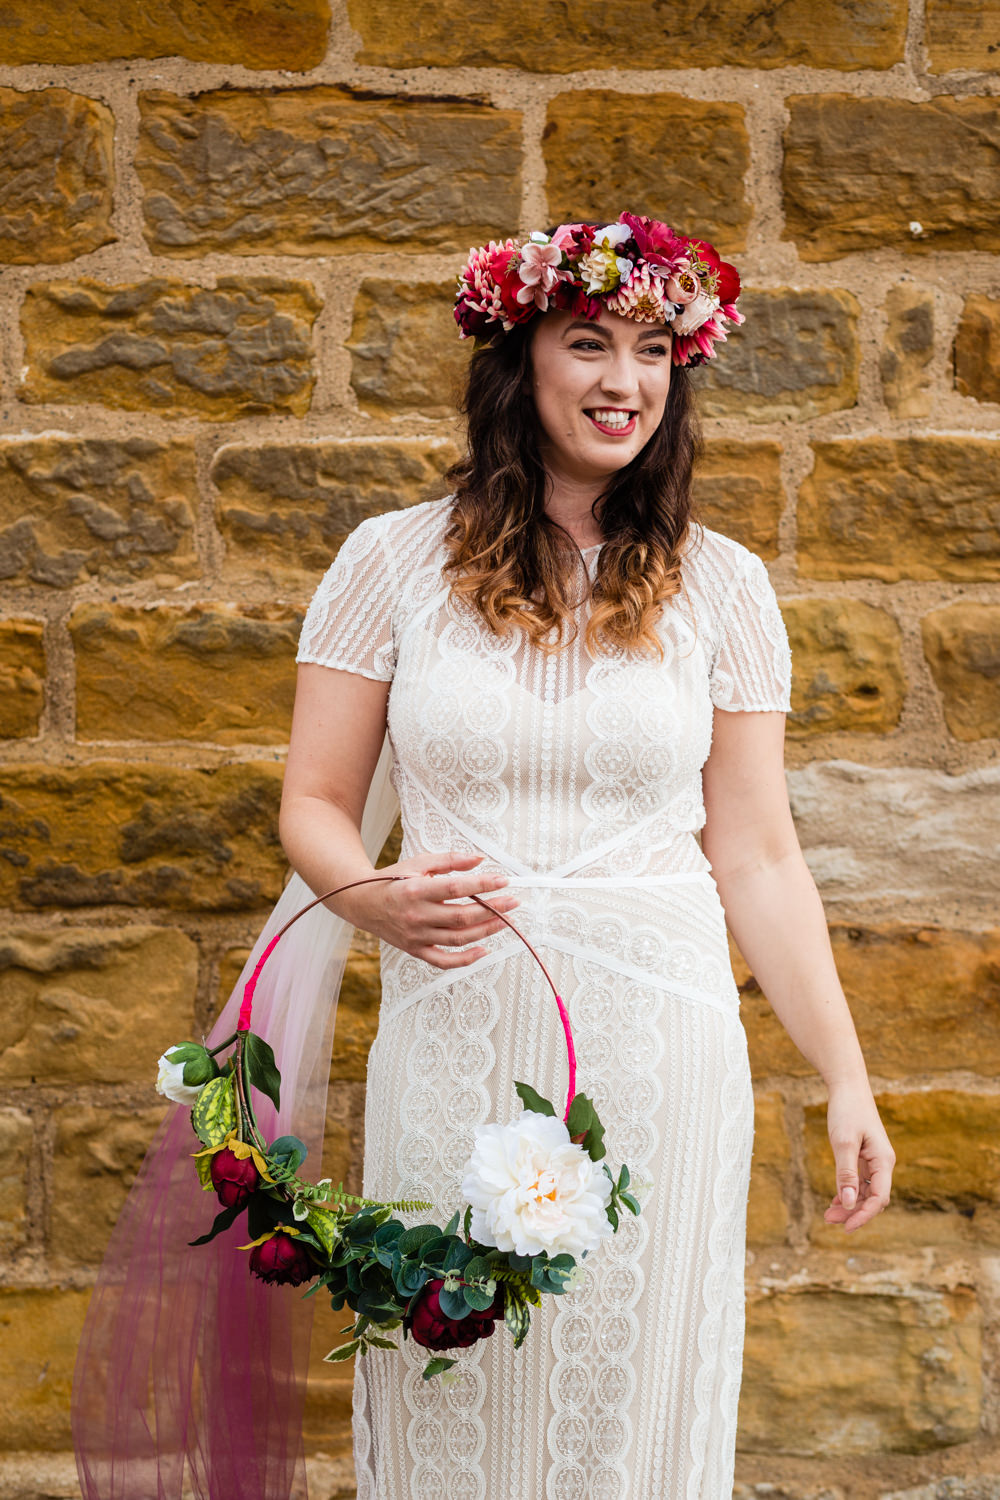 Bride Bridal Dress Lace Sleeves Train Ombre Veil Hoop Wreath Flowers Watters Wtoo Colourful Festival Party Wedding Emma and Rich Photography